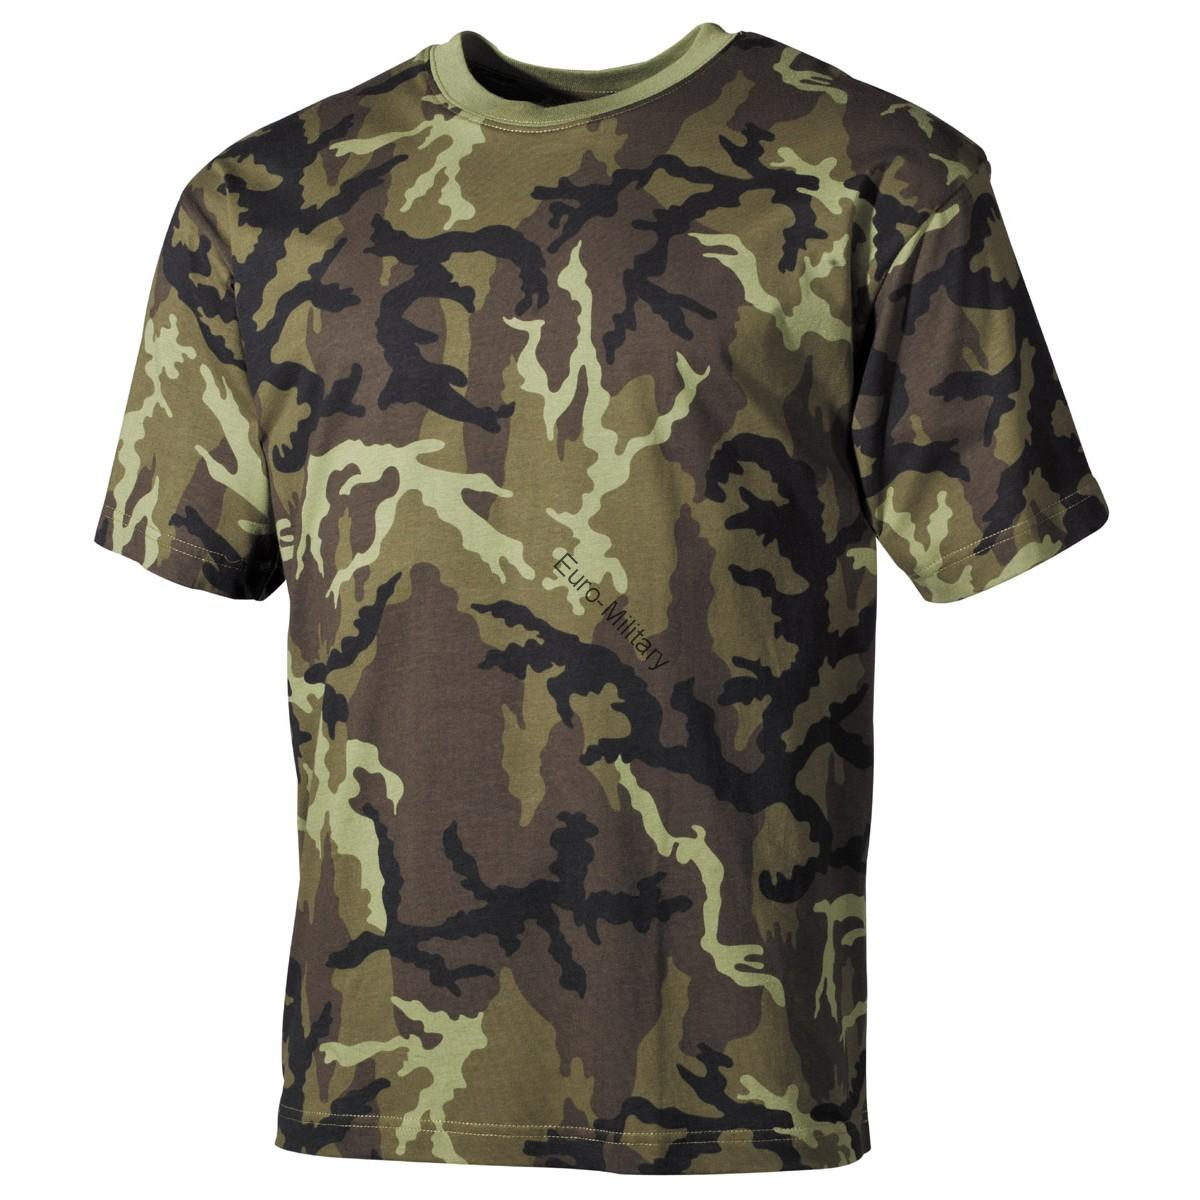 Czech Army M95 Camo T-Shirt - Short Sleeve